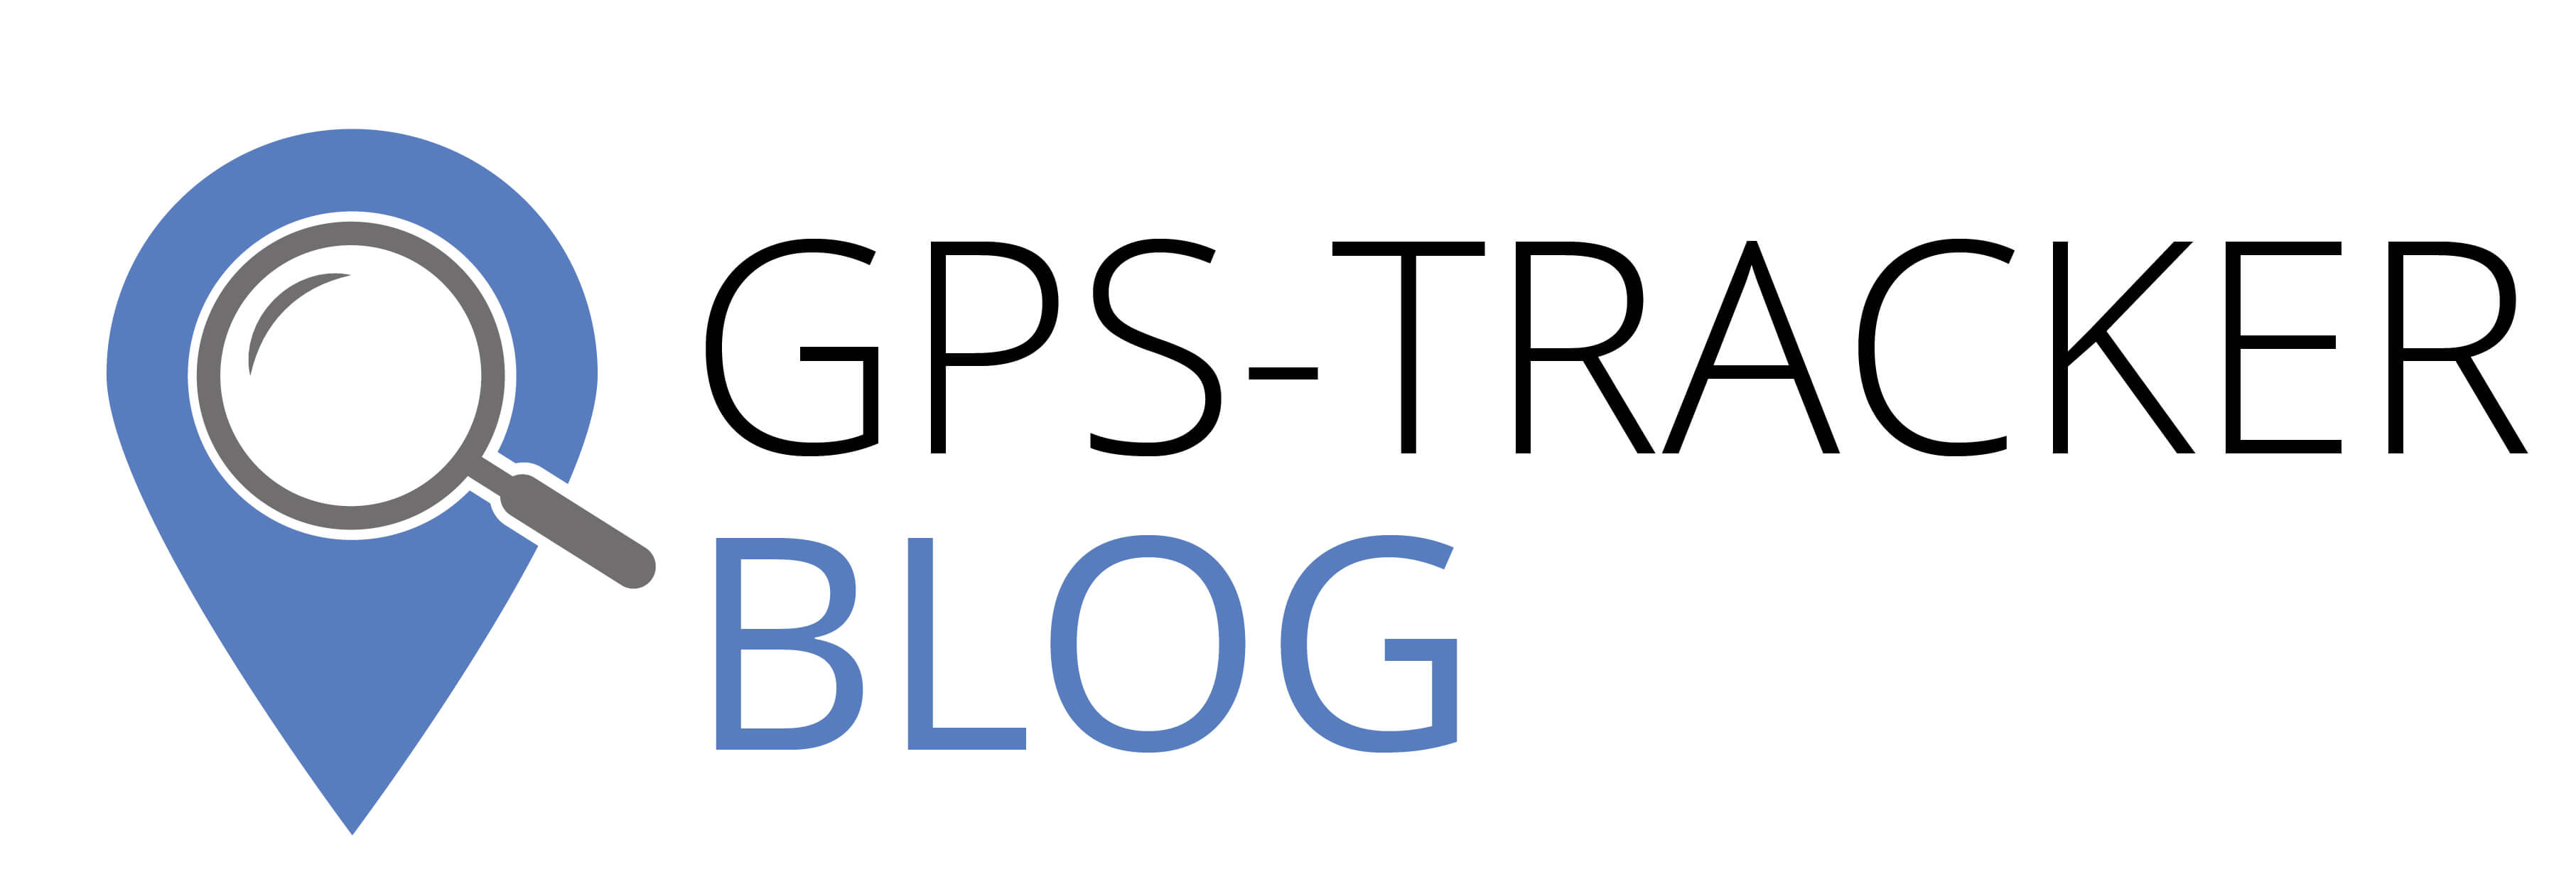 GPS-Tracker-Blog